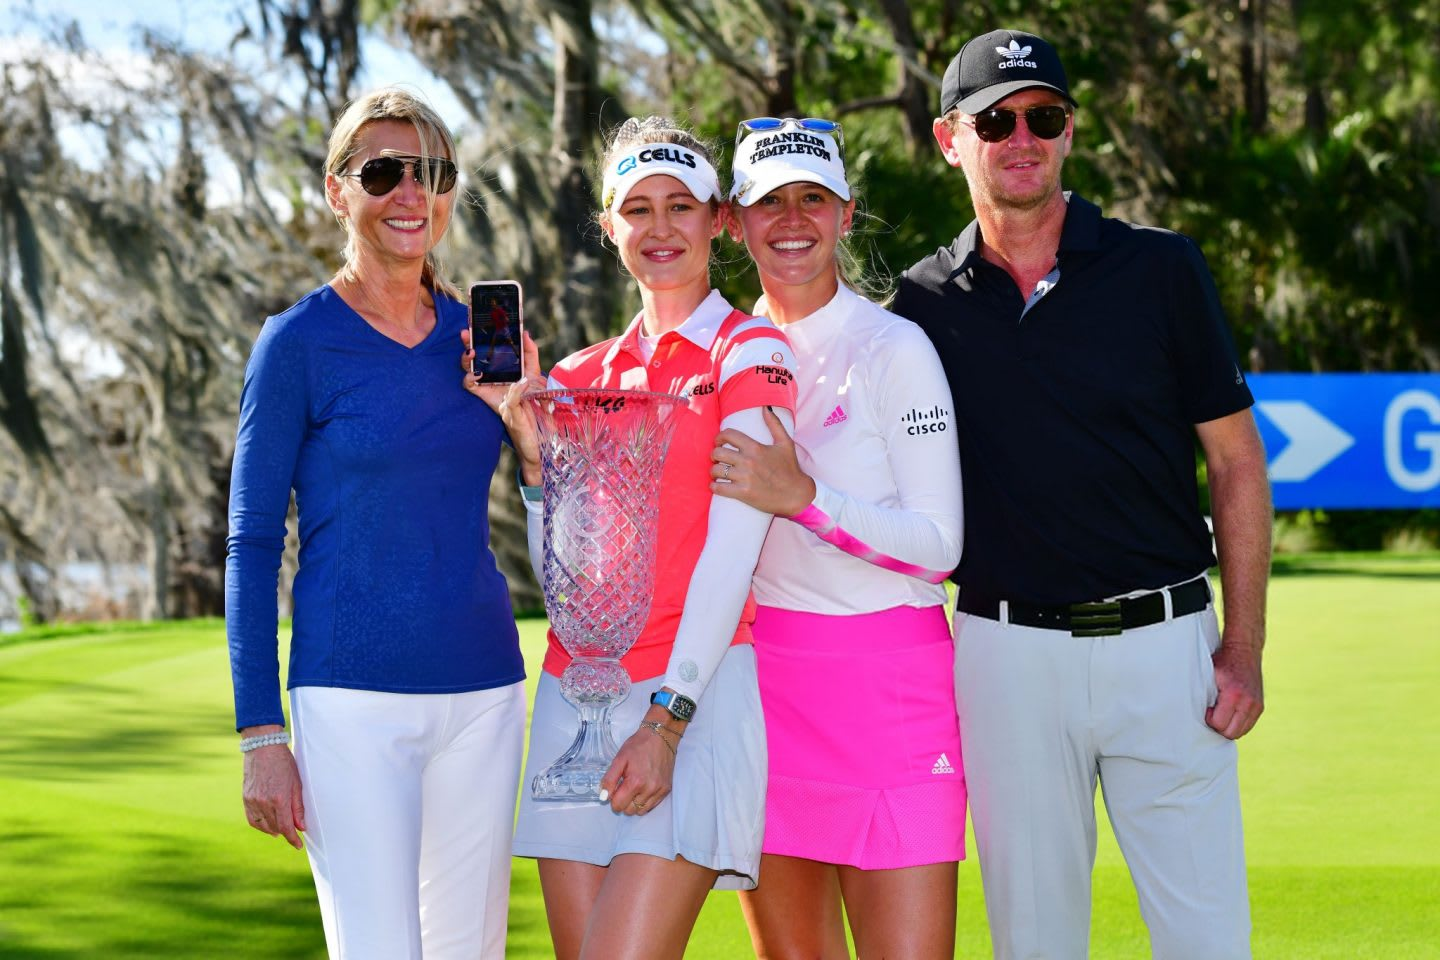 Nelly Korda adds Sebastian to family picture after success in Orlando. Family, golf, tennis, trophy, Sebastian Korda